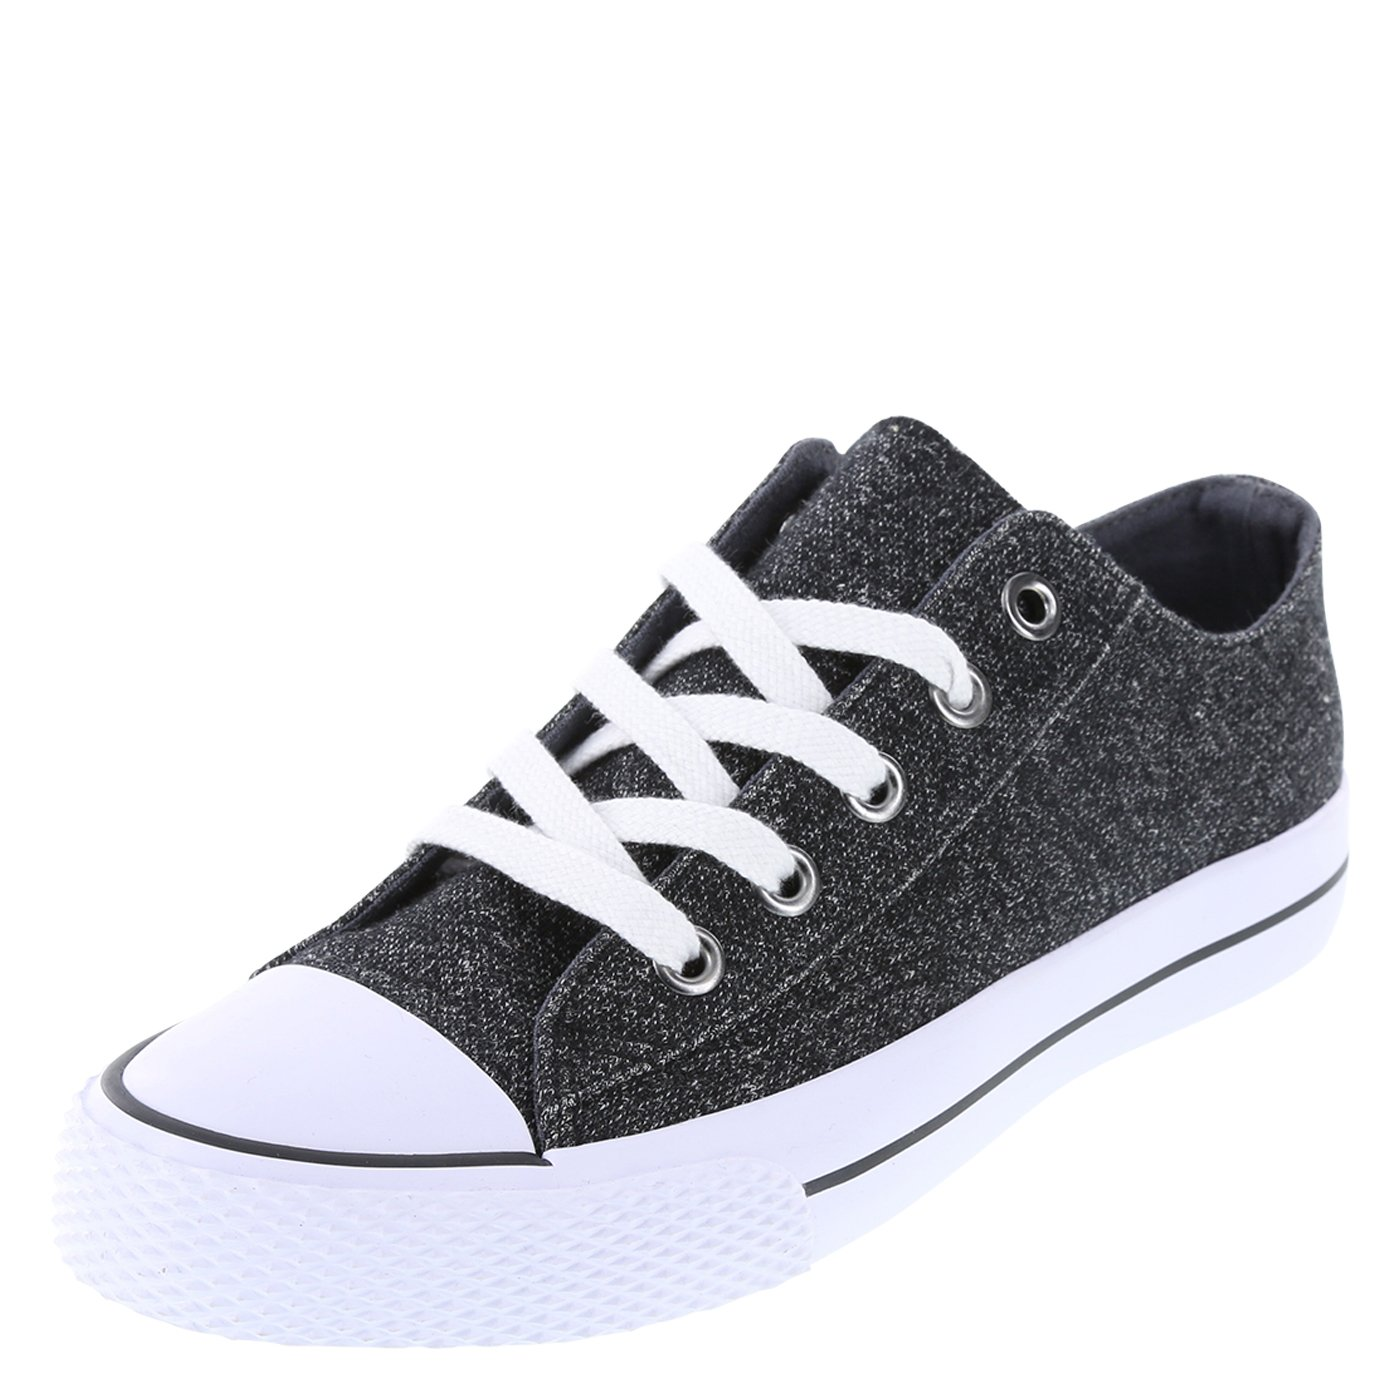 Airwalk Dark Grey Jersey Women's Legacee Sneaker 8.5 Regular